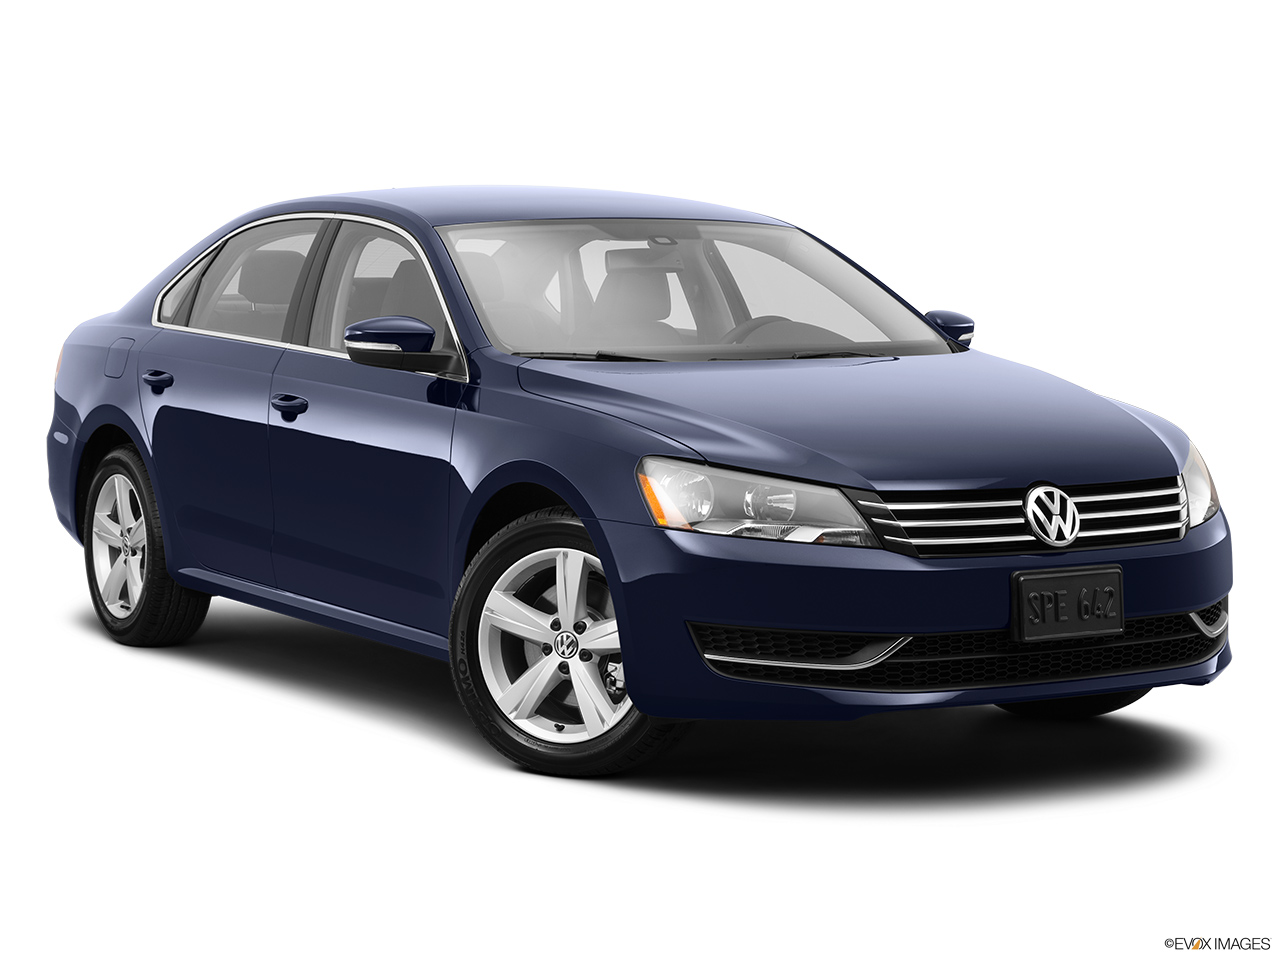 2014 volkswagen passat sedan 2 5l automatic se w sunroof. Black Bedroom Furniture Sets. Home Design Ideas